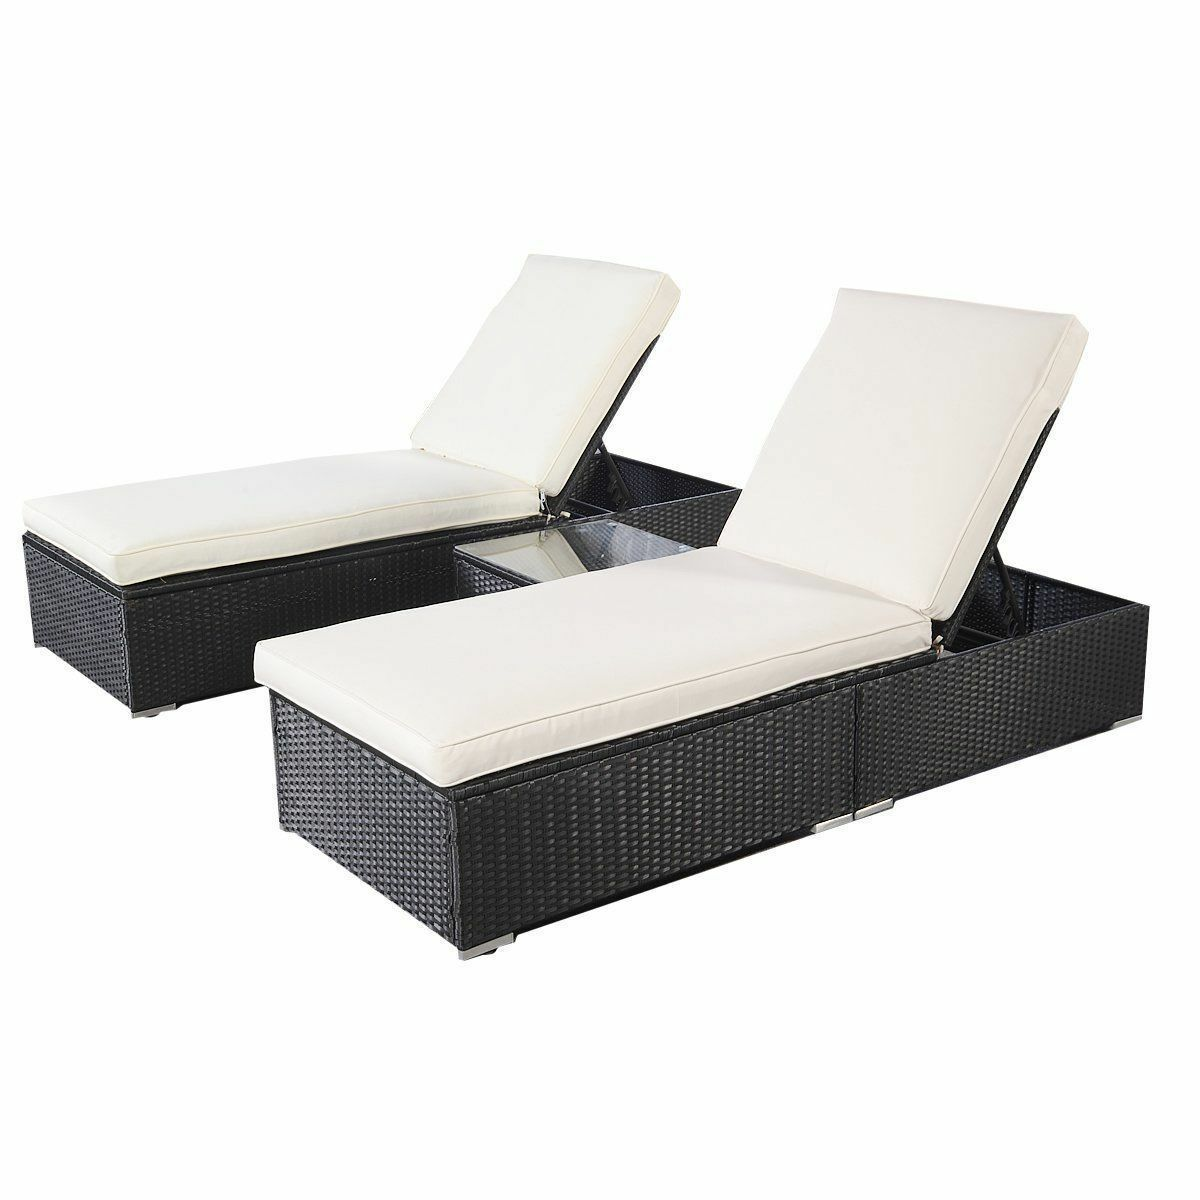 wicker rattan lounge sofa chaise chair bed set patio. Black Bedroom Furniture Sets. Home Design Ideas